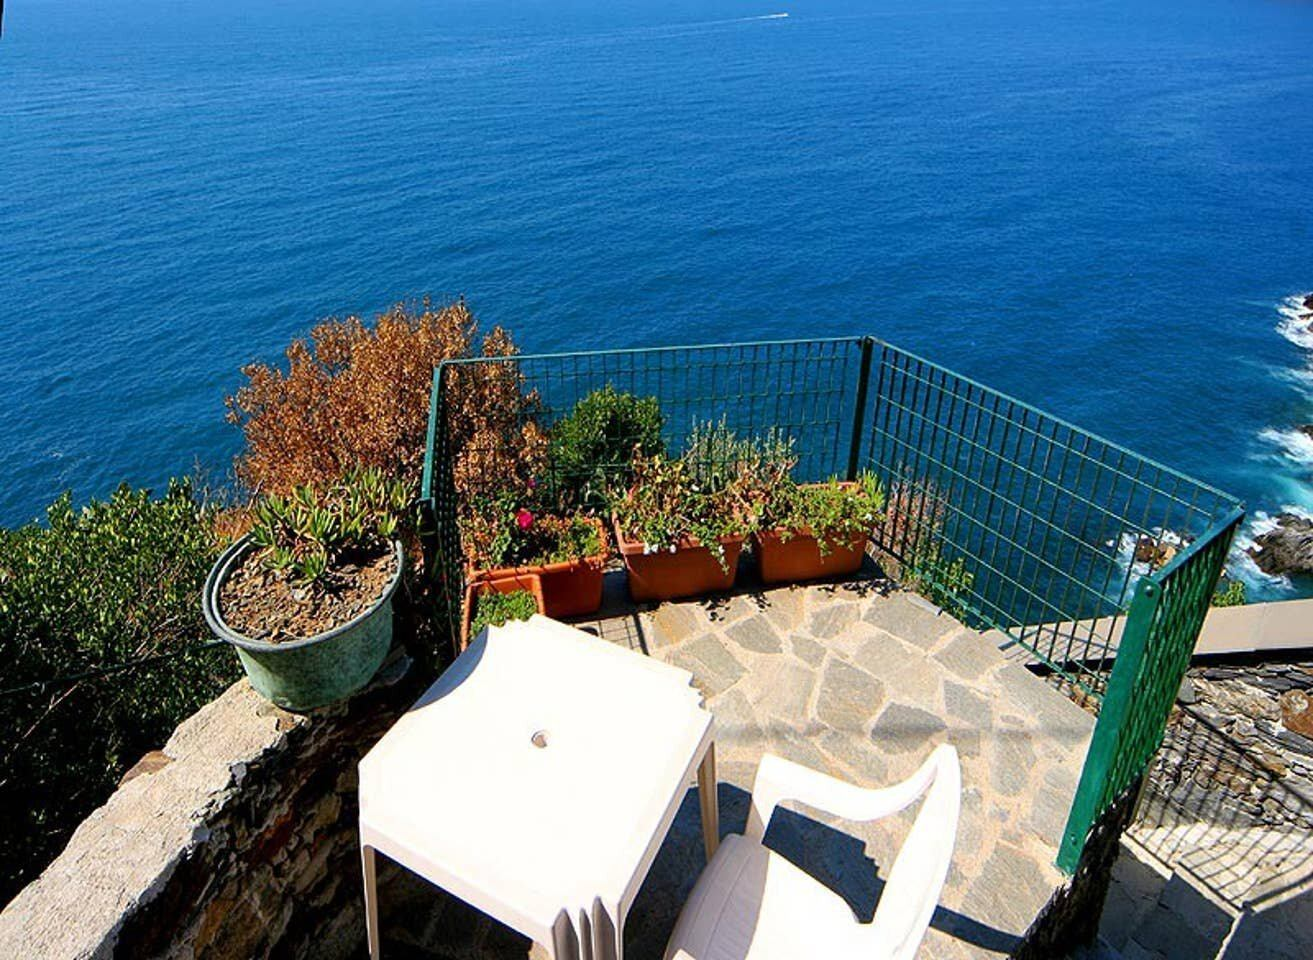 Self contained spot overlooking the Med, Cinque Terre